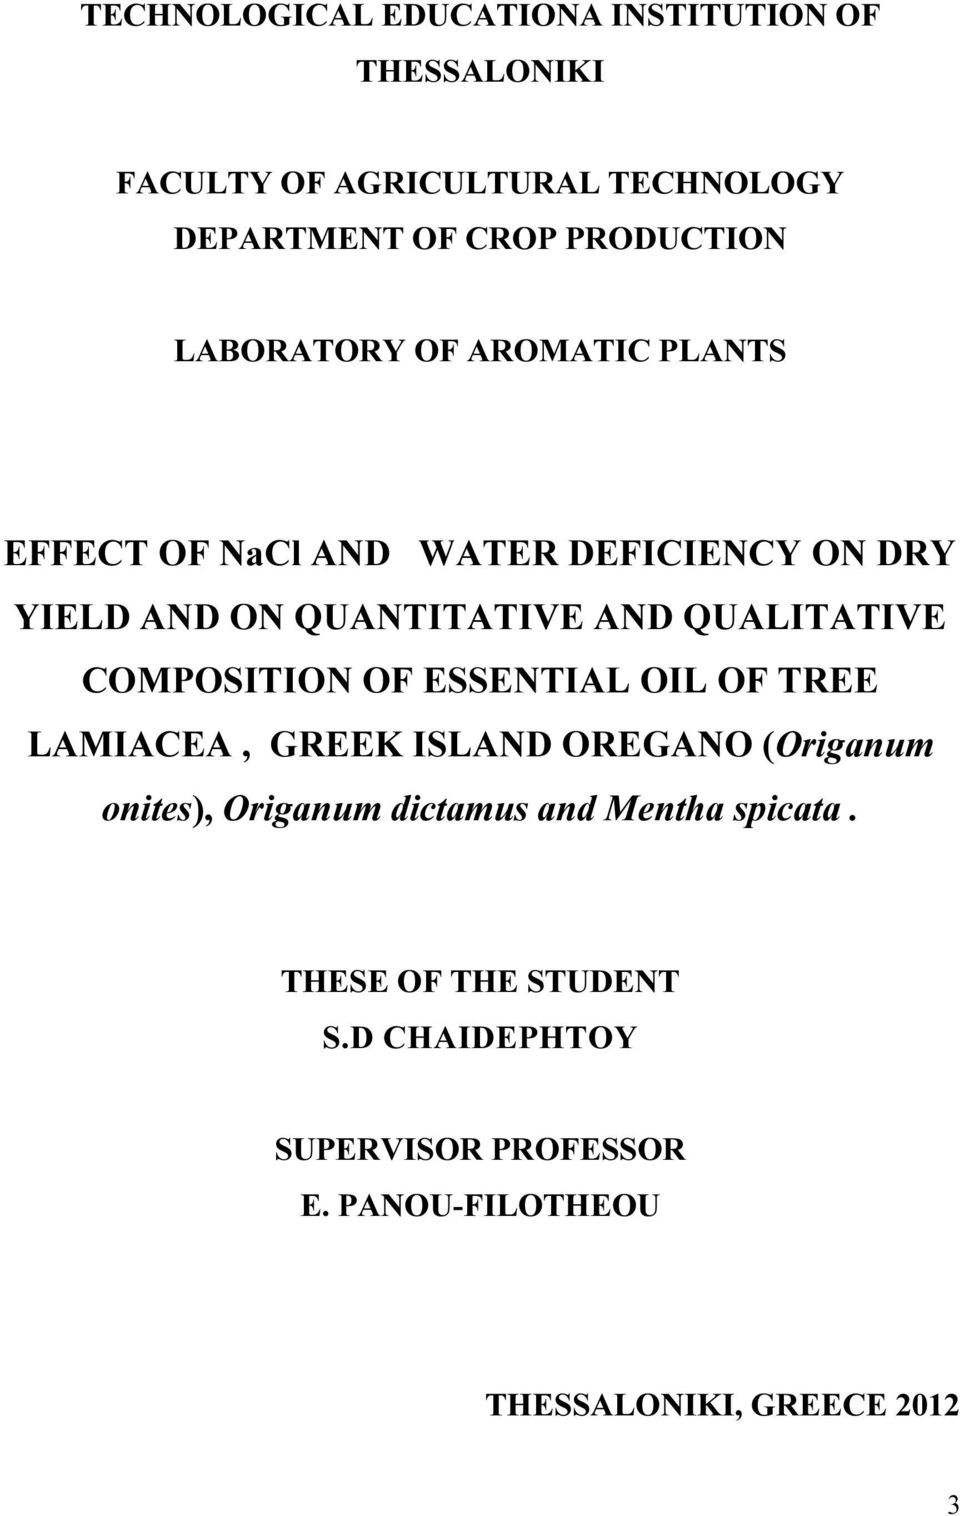 QUALITATIVE COMPOSITION OF ESSENTIAL OIL OF TREE LAMIACEA, GREEK ISLAND OREGANO (Origanum onites), Origanum